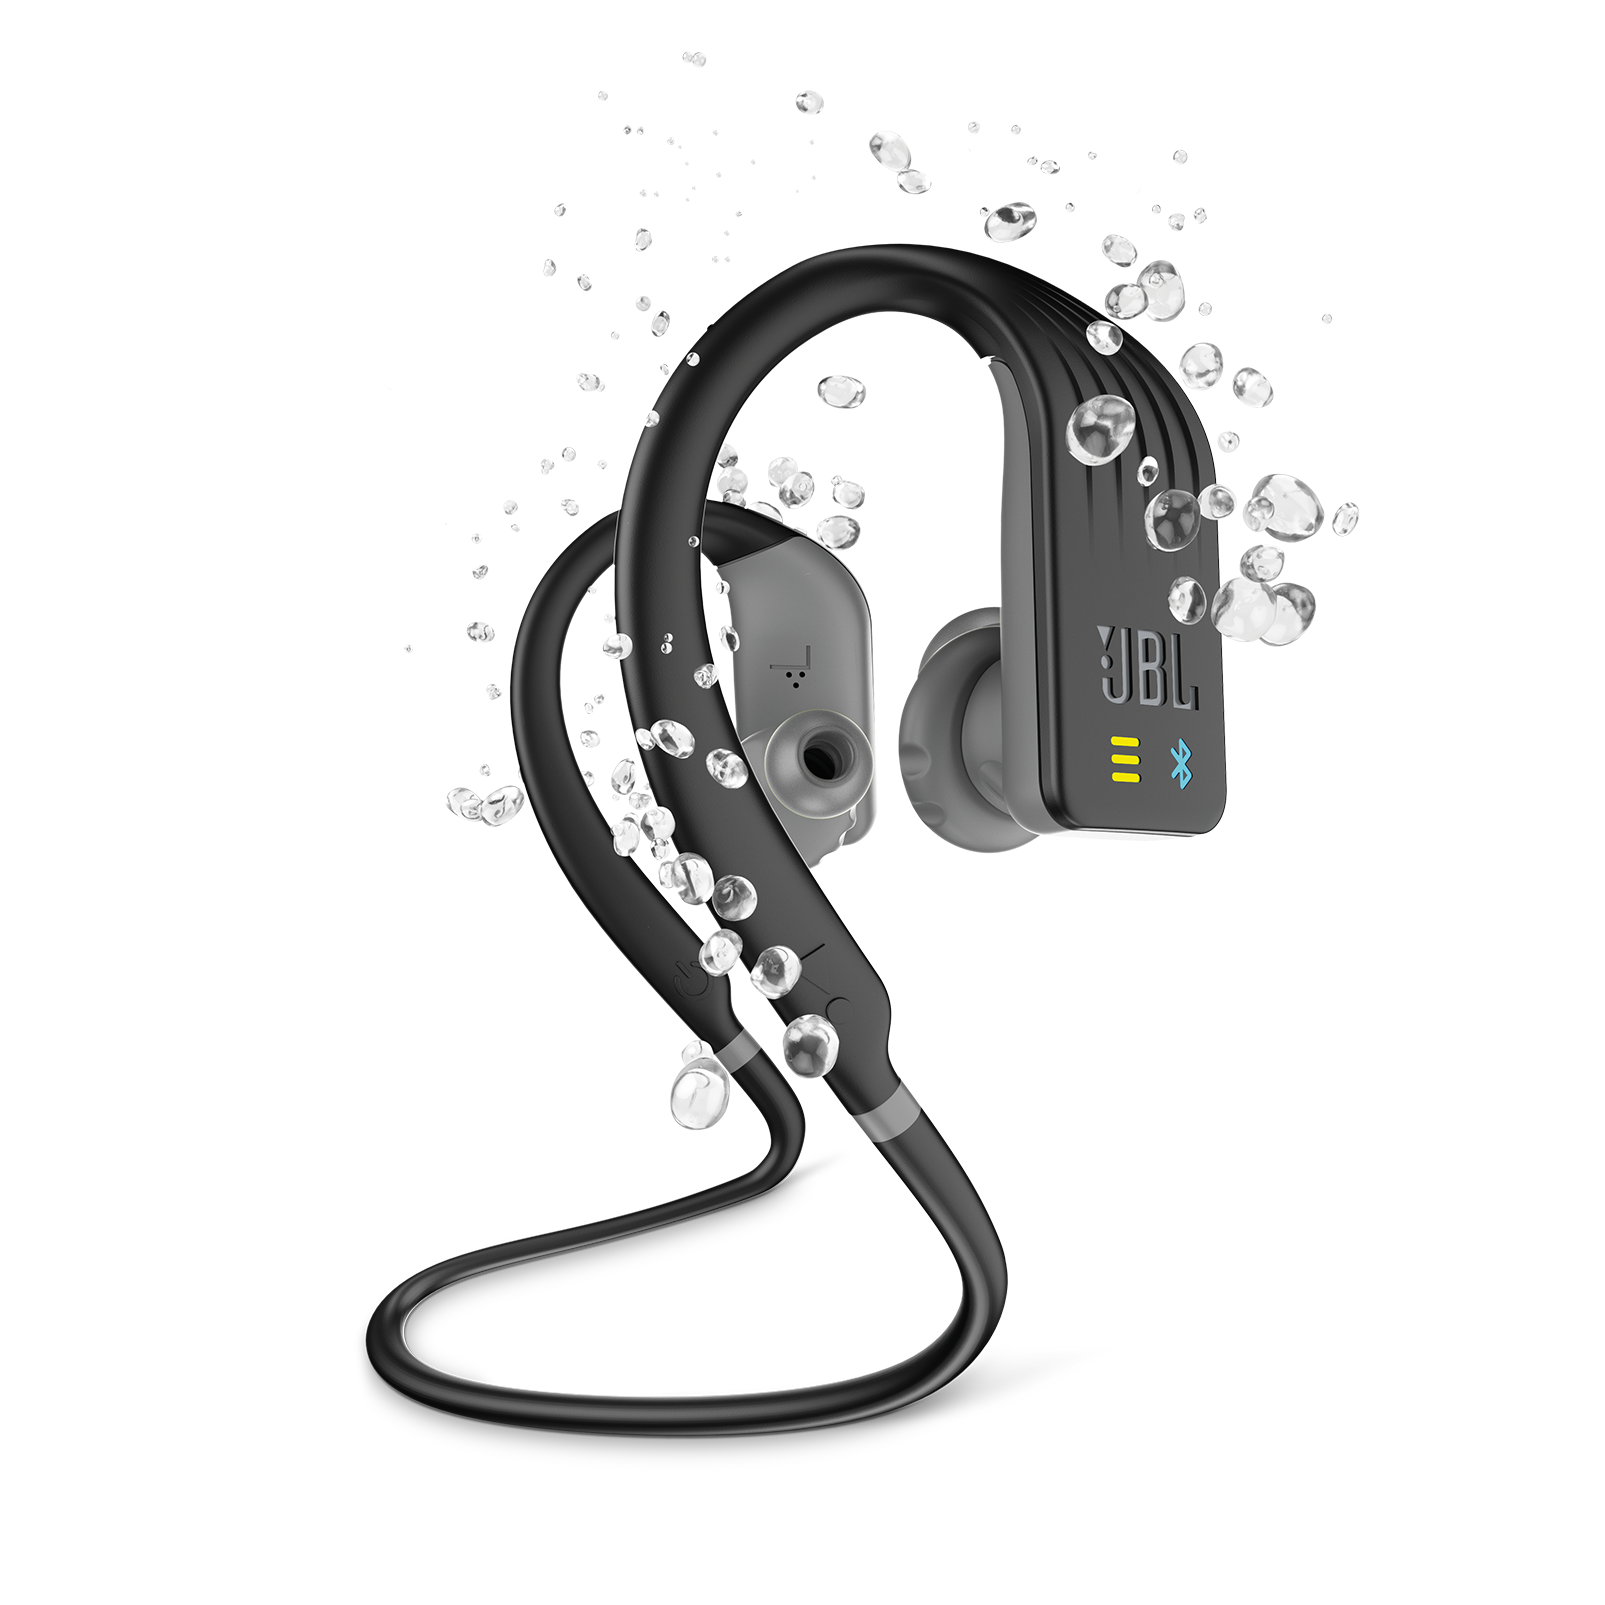 Jbl Dive R Wireless Sports Headphones With Mp3 Player Endurance